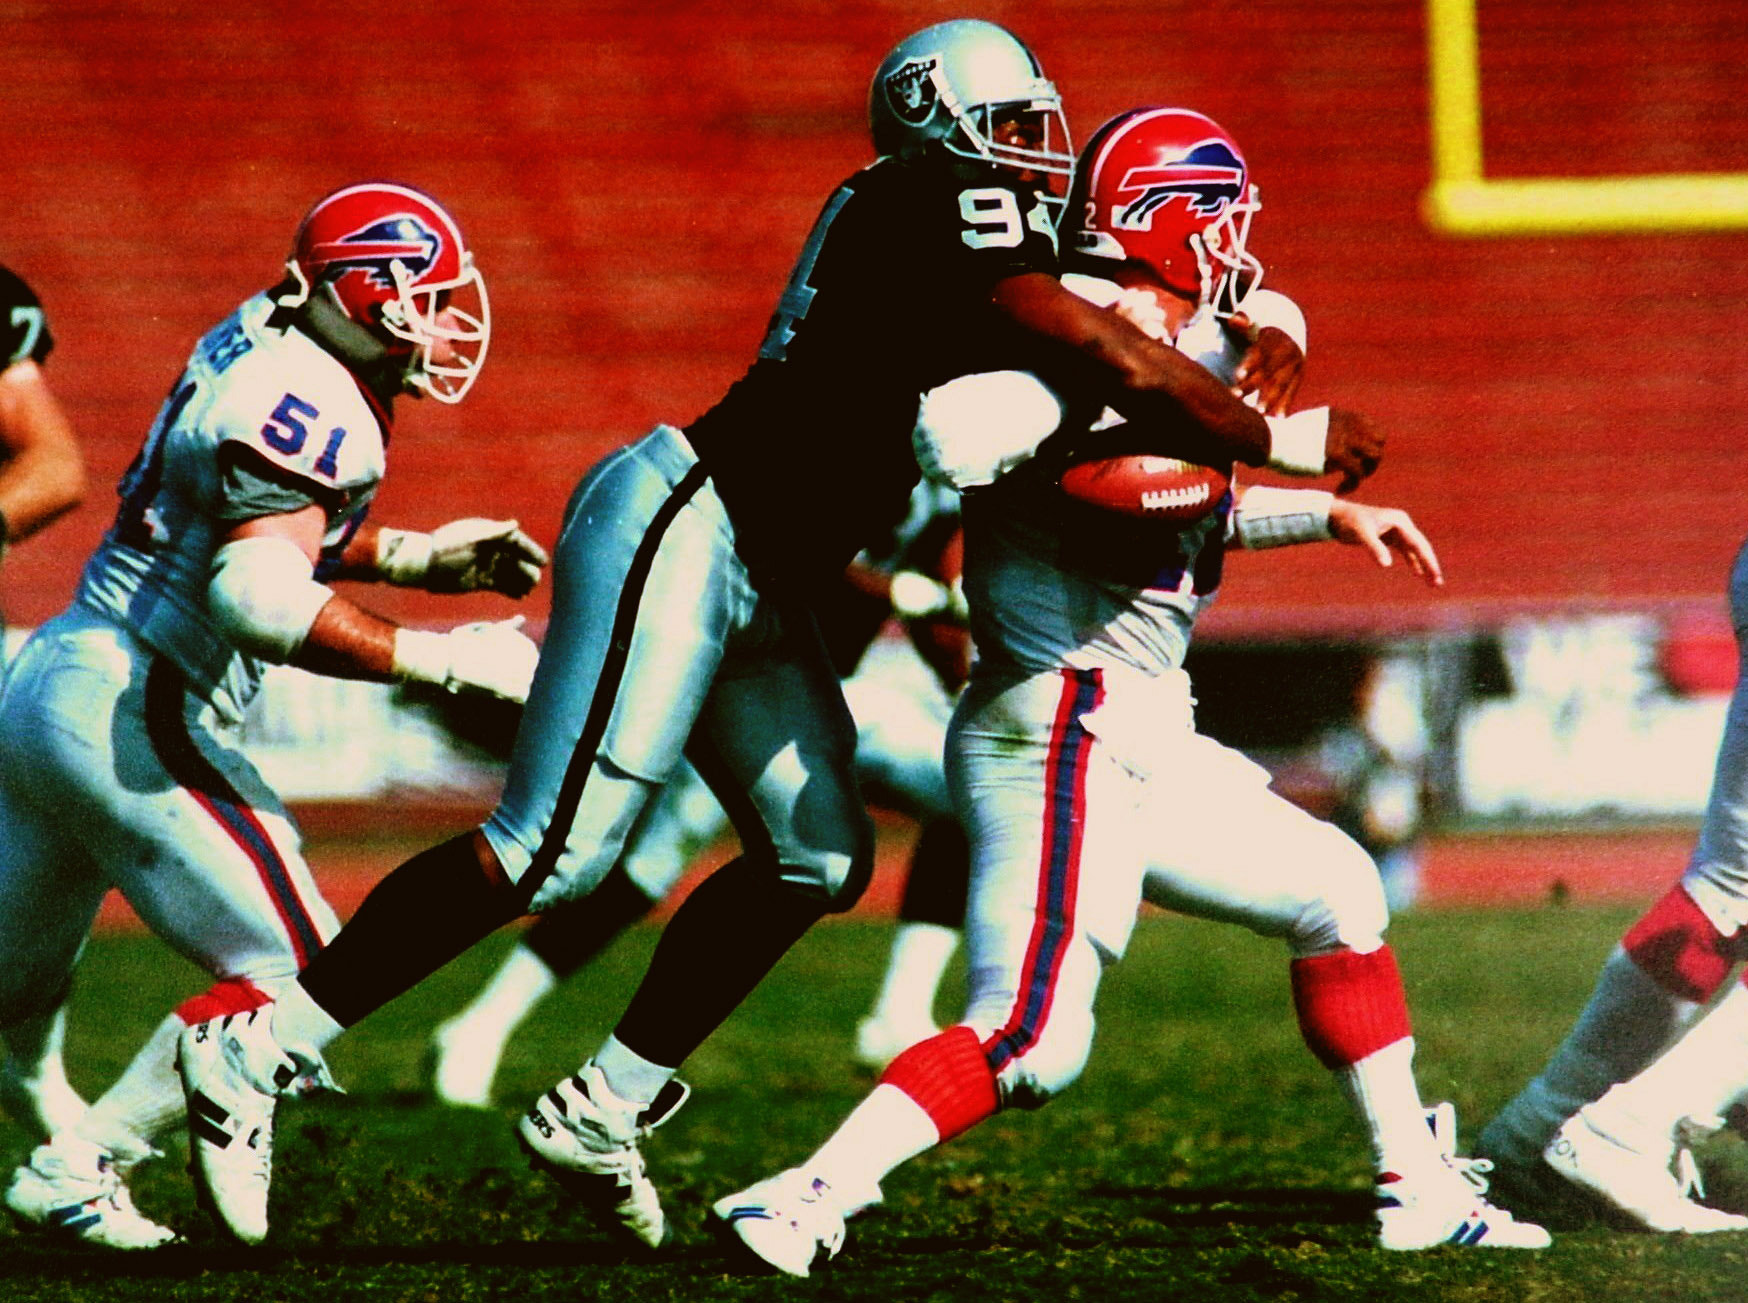 Photograph Anthony Smith Sacks Jim Kelly by Brent Lewis on 500px